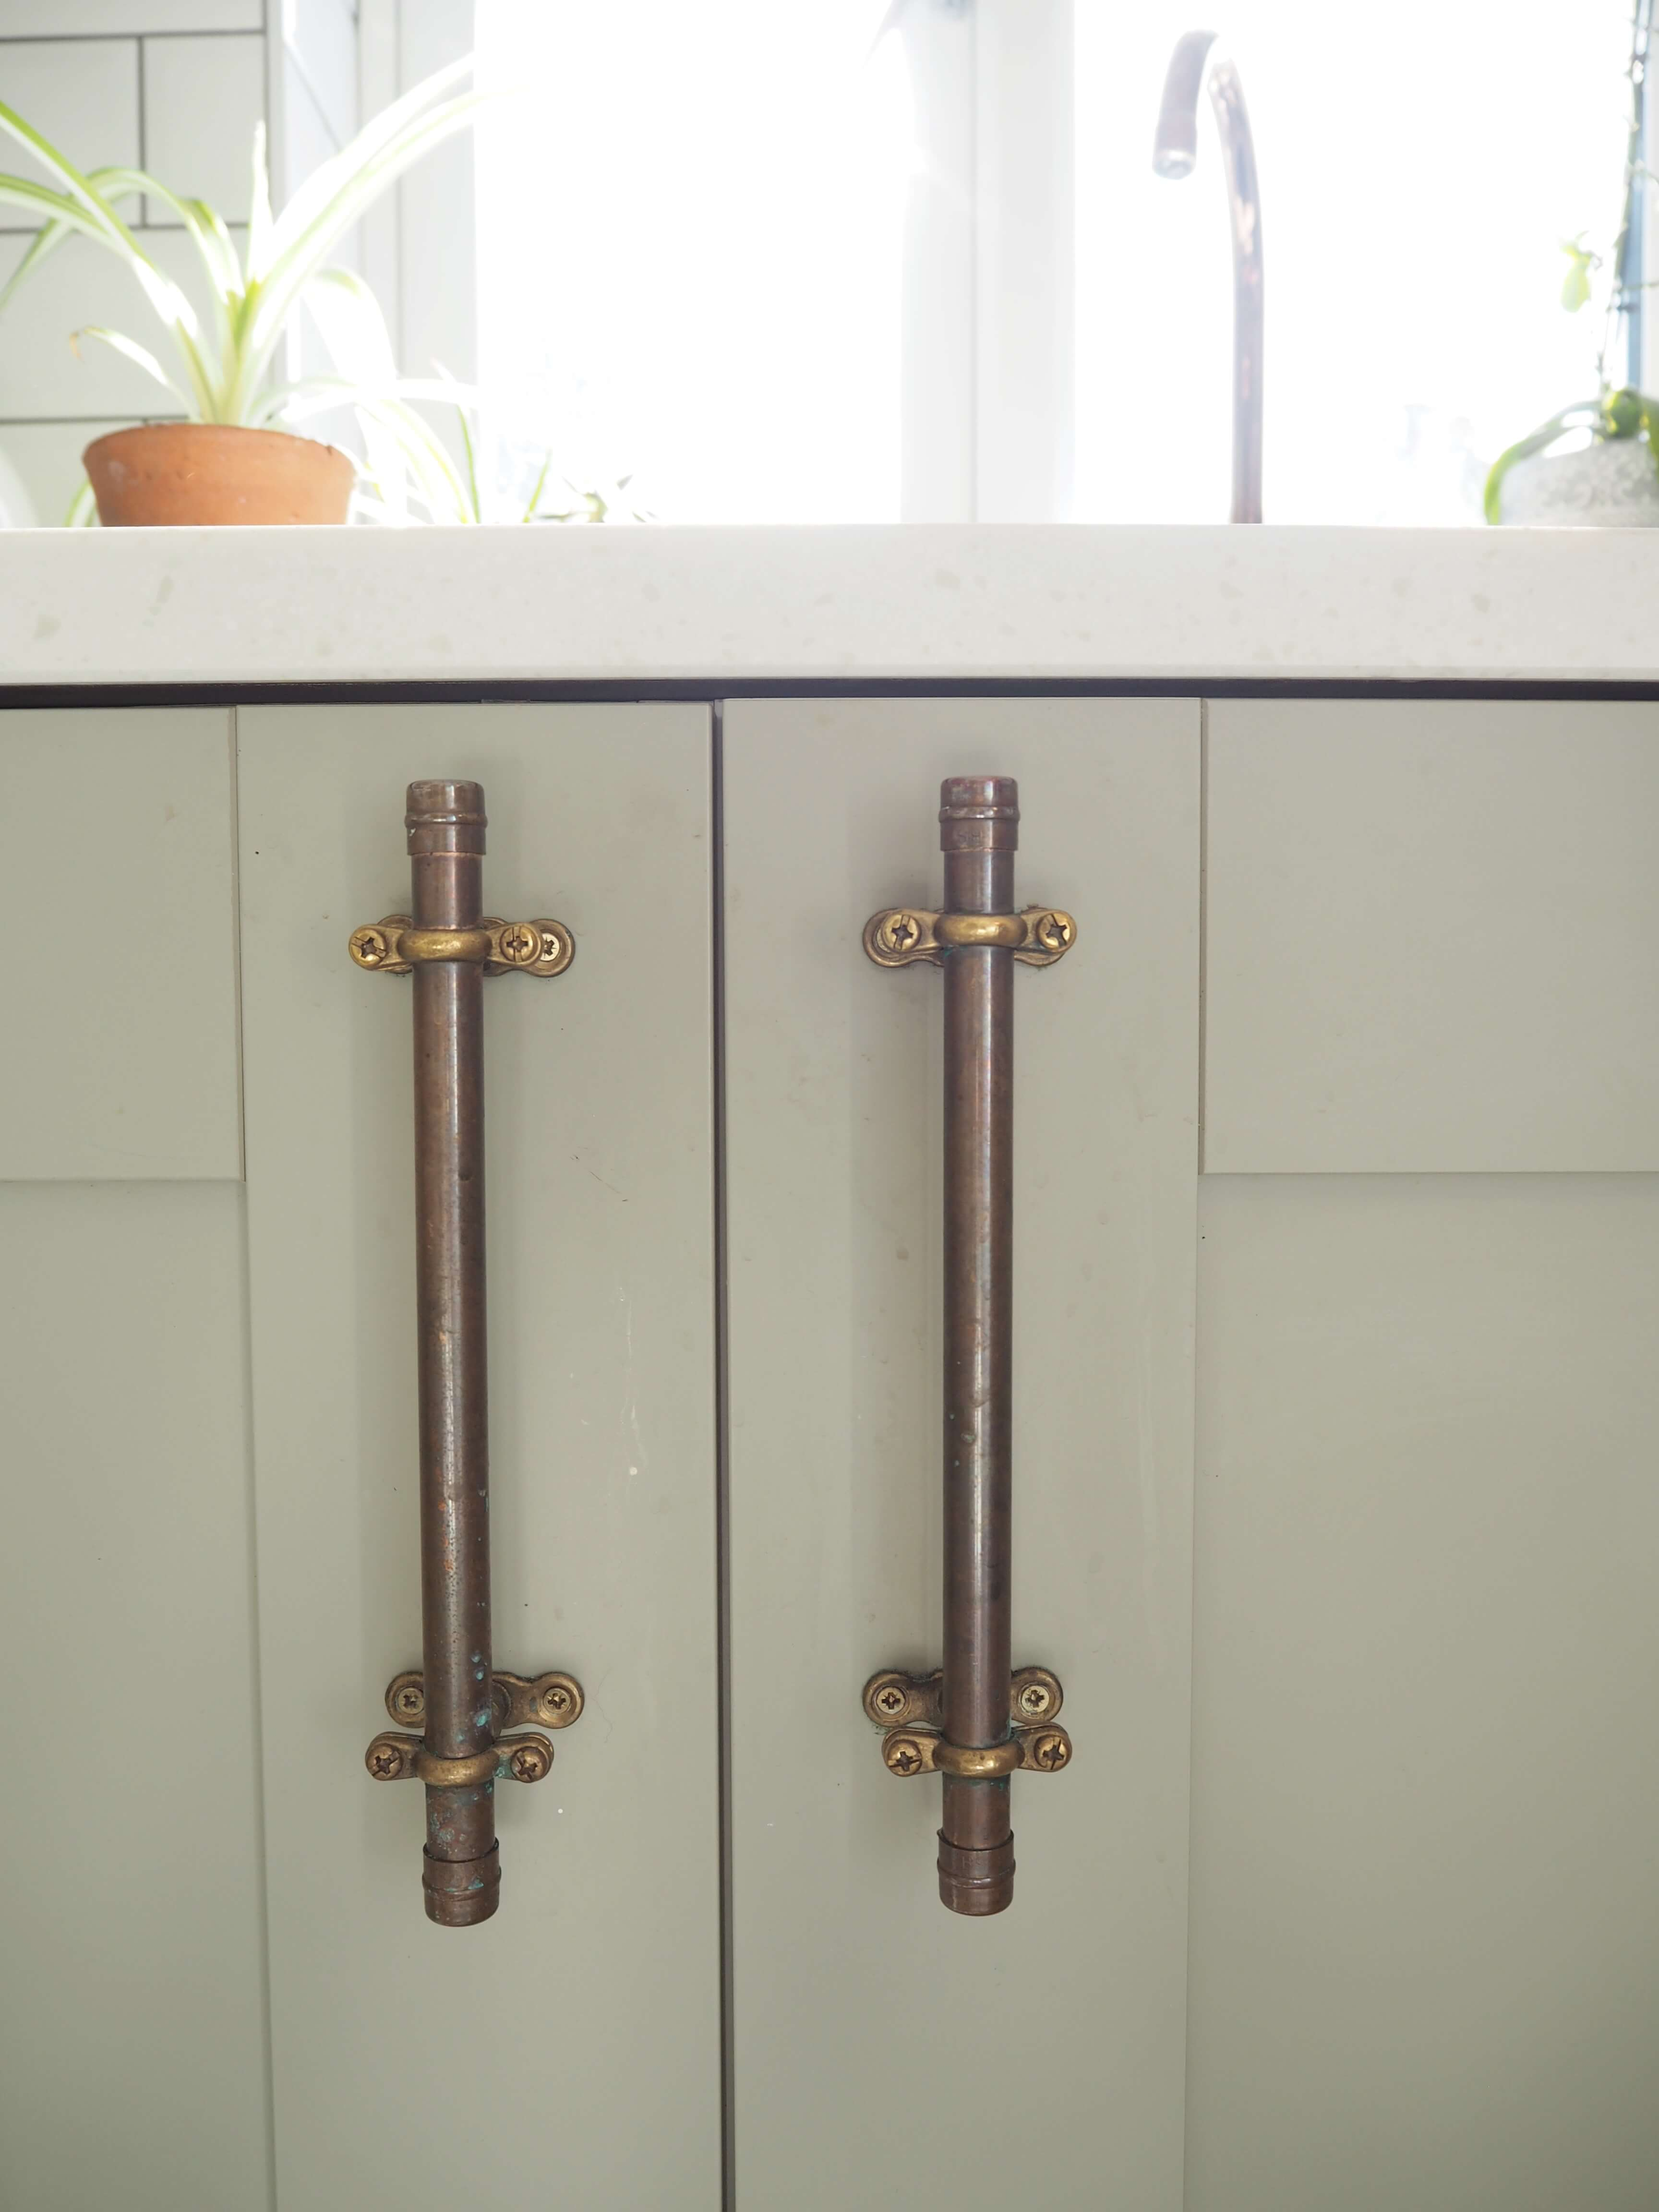 Diy Copper Pipe Drawer Pulls Welovehome Home